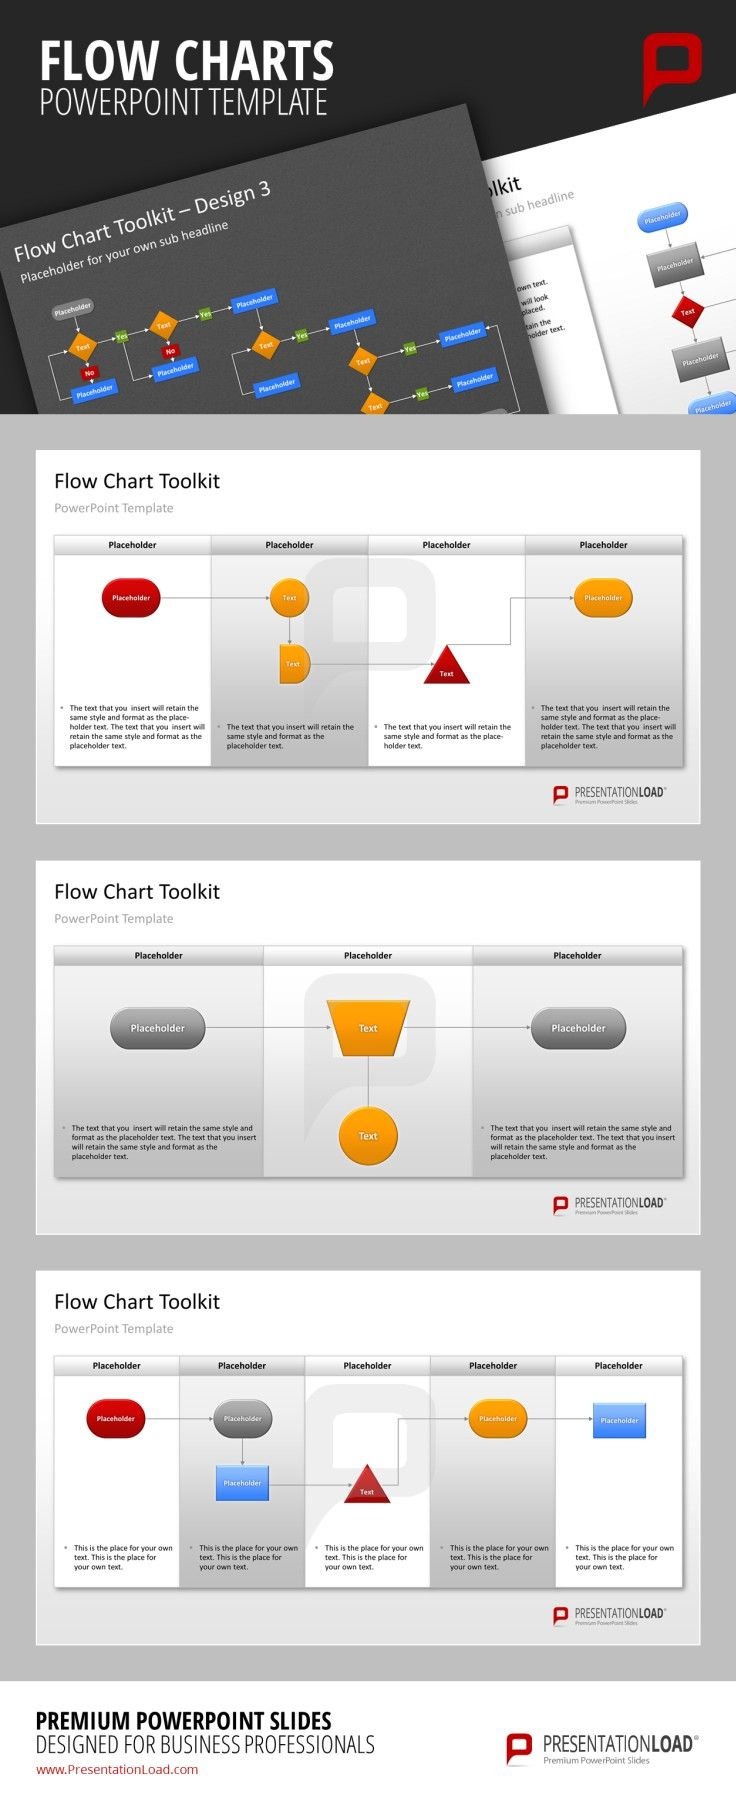 Flow Charts Powerpoint Templates This Comprehensive Collection Of